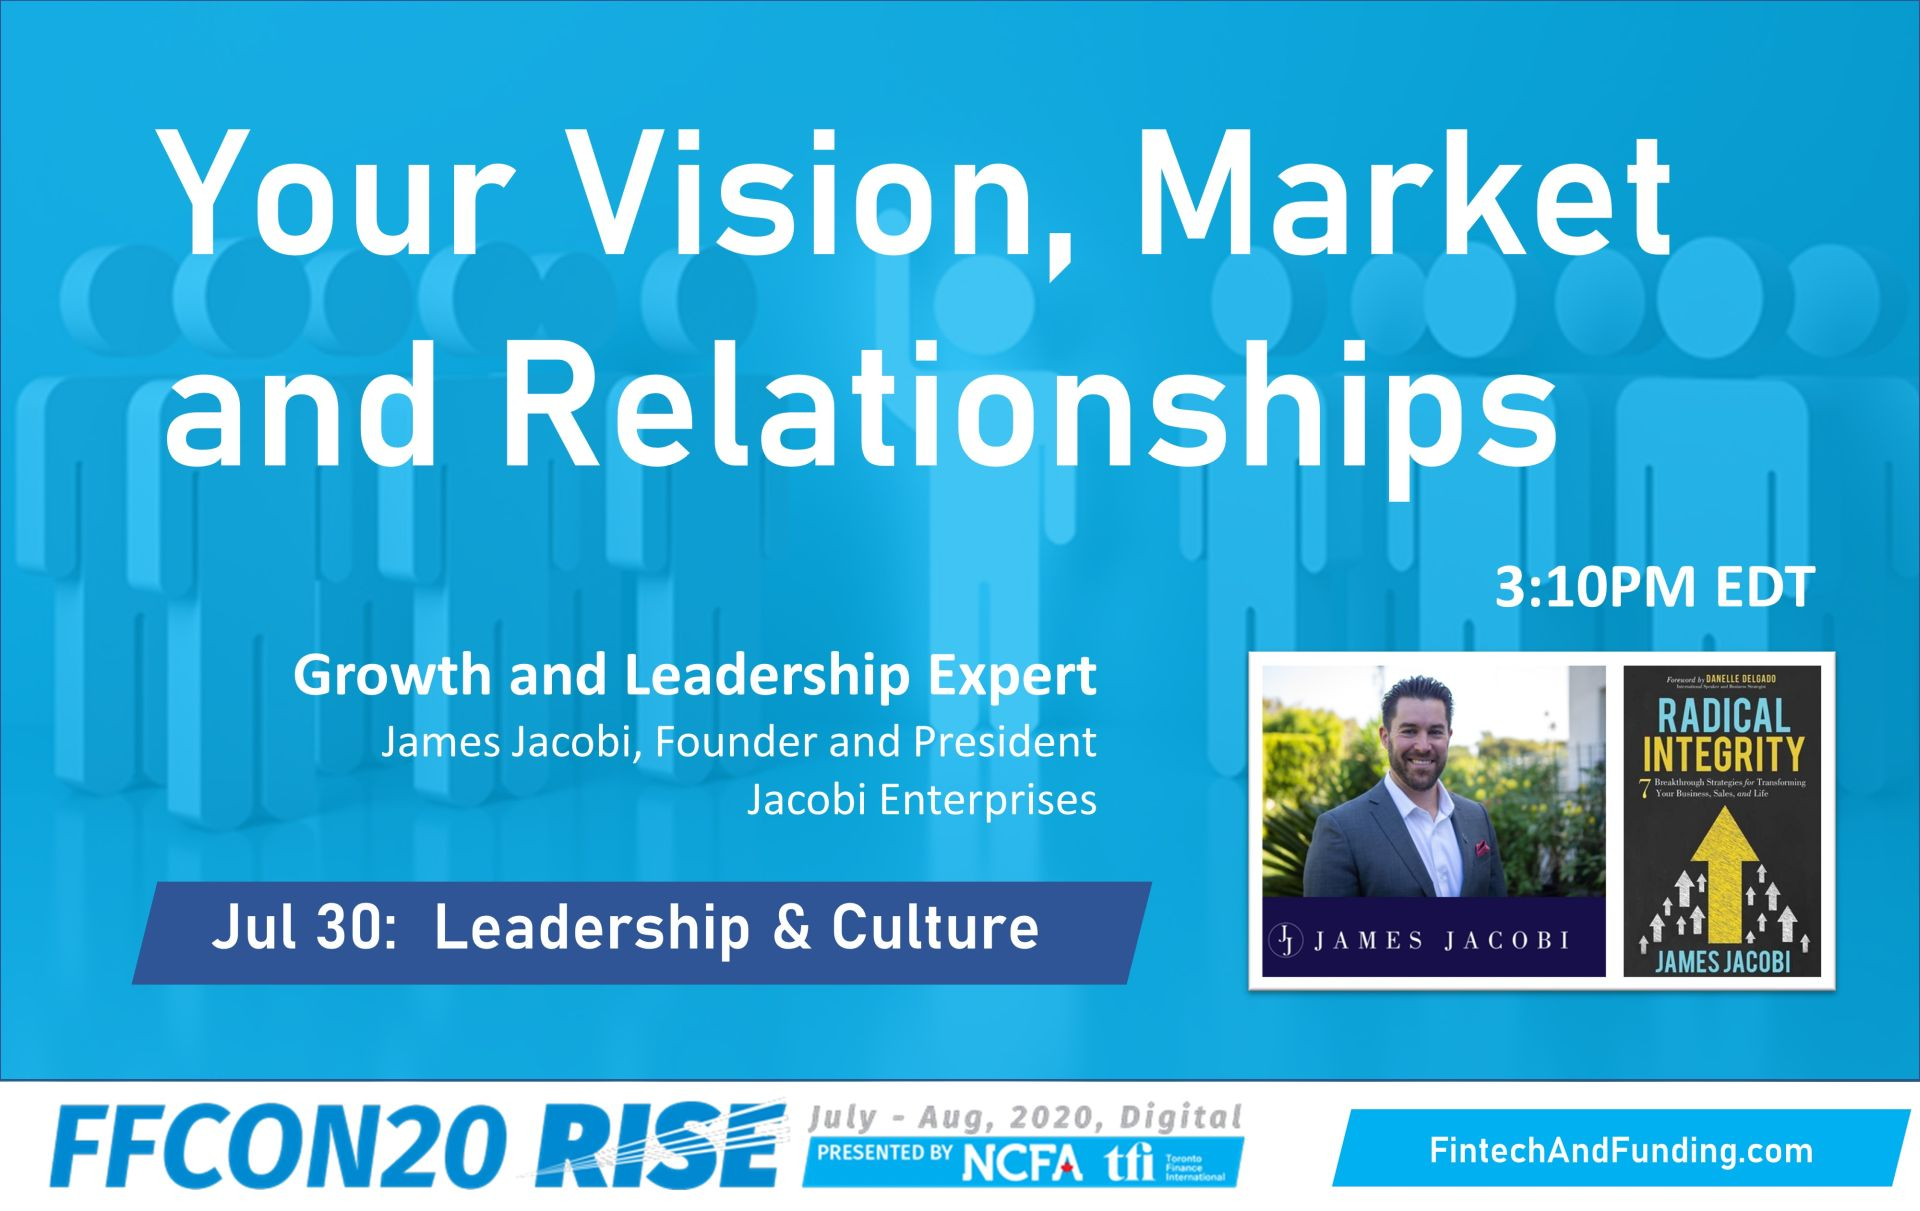 FFCON20 July 30 Your Vision, Market and Relationships - James Jacobi